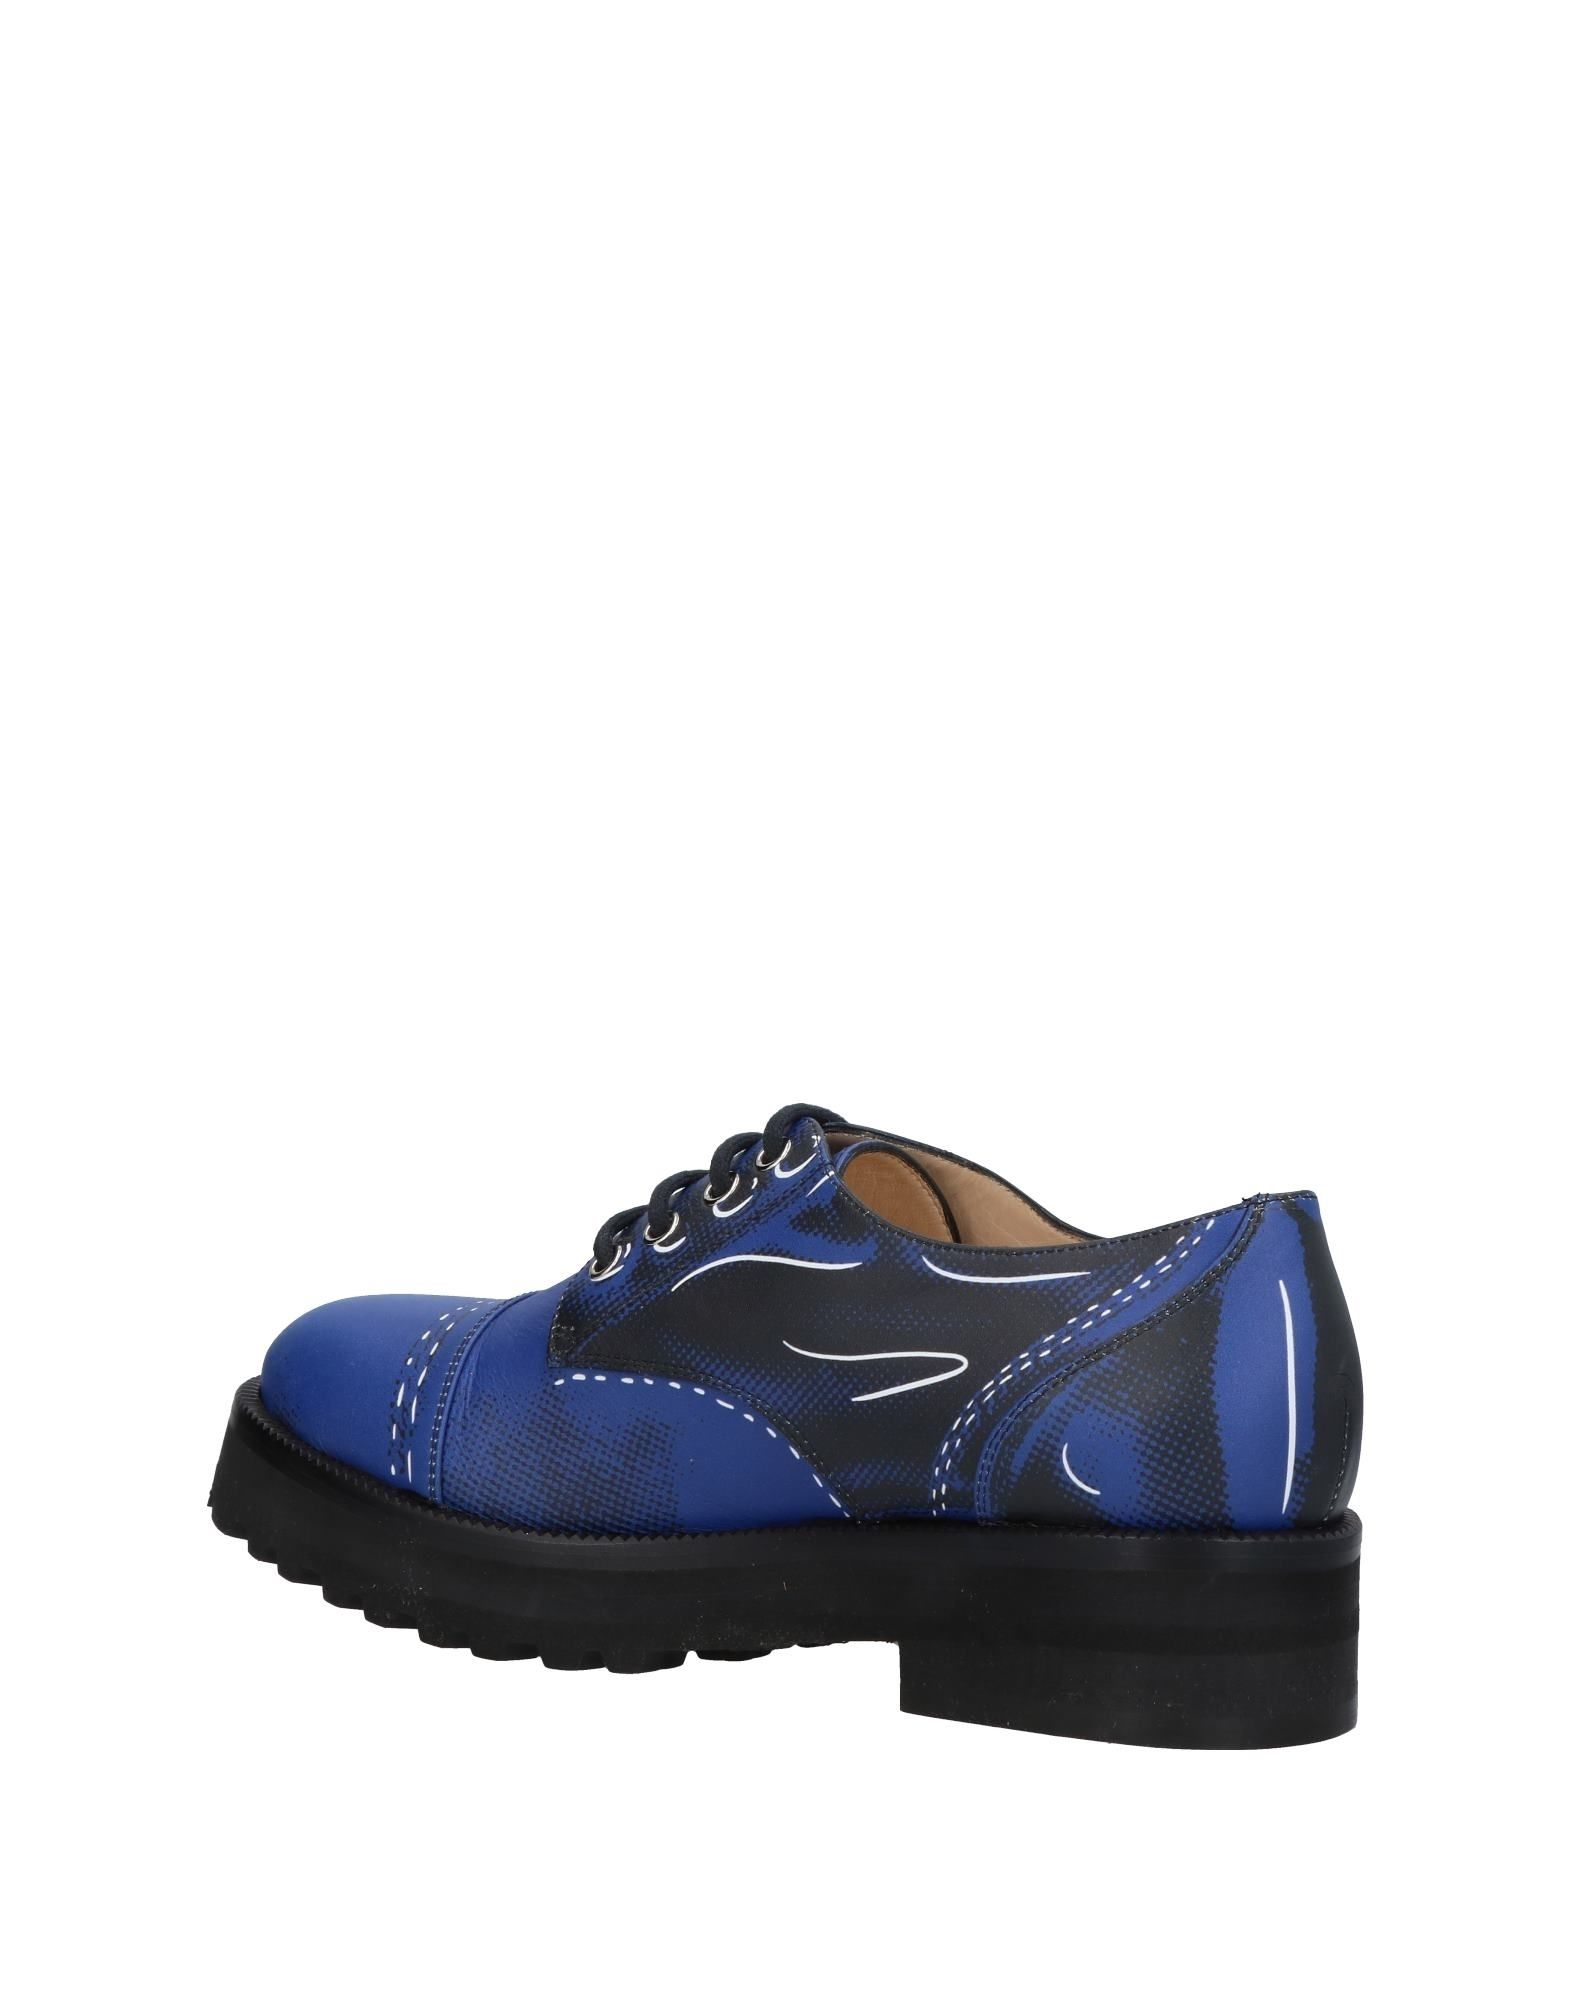 Chaussures À Lacets Moschino Femme - Chaussures À Lacets Moschino sur